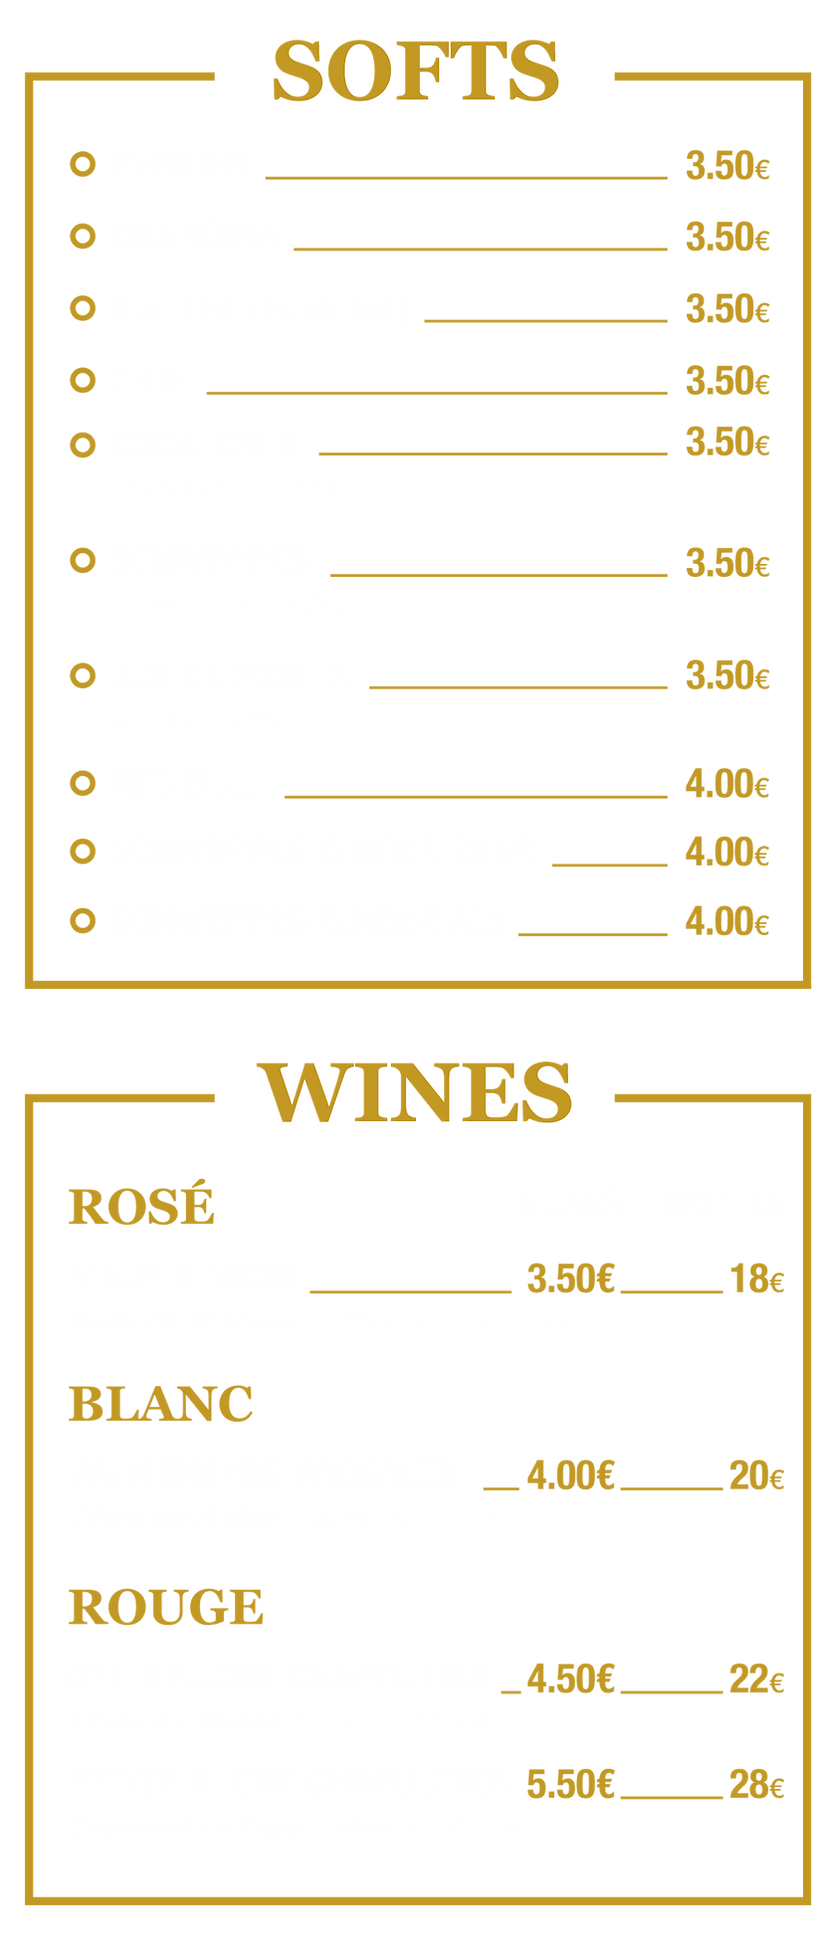 D5-SOFTS-WINES-2021.png